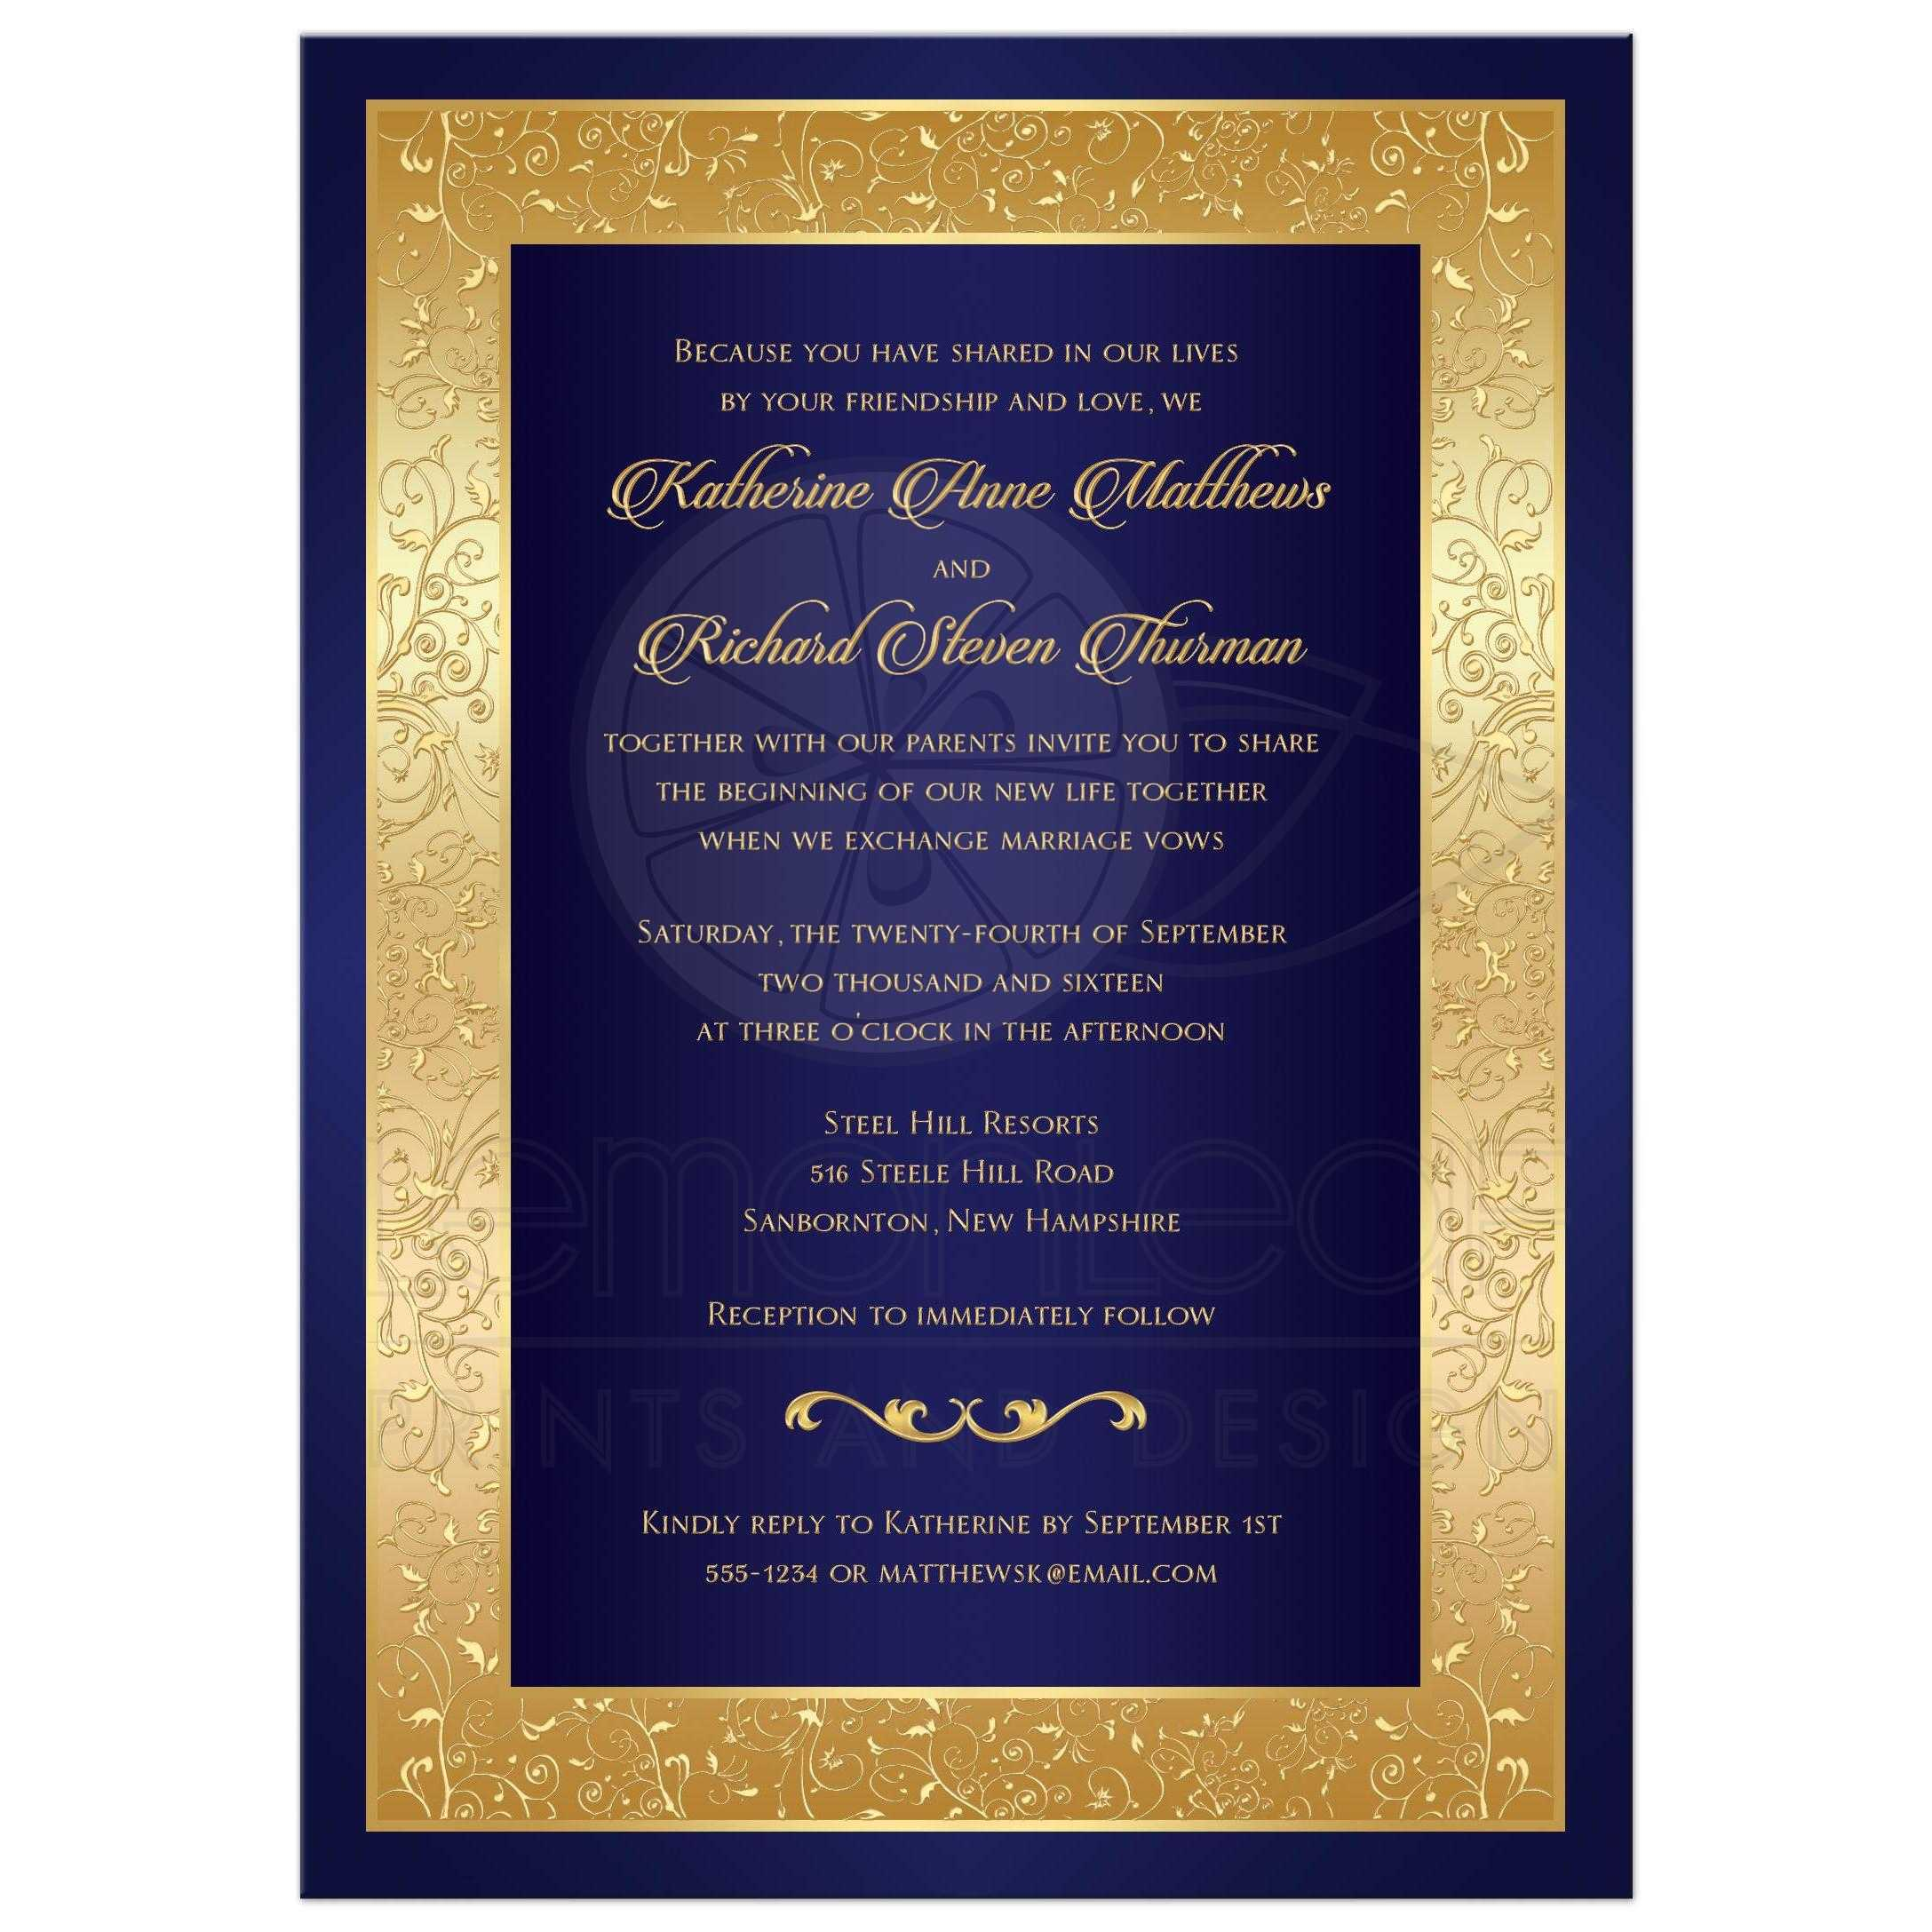 Blue And Gold Wedding Invitation With Fl Scrolled Border